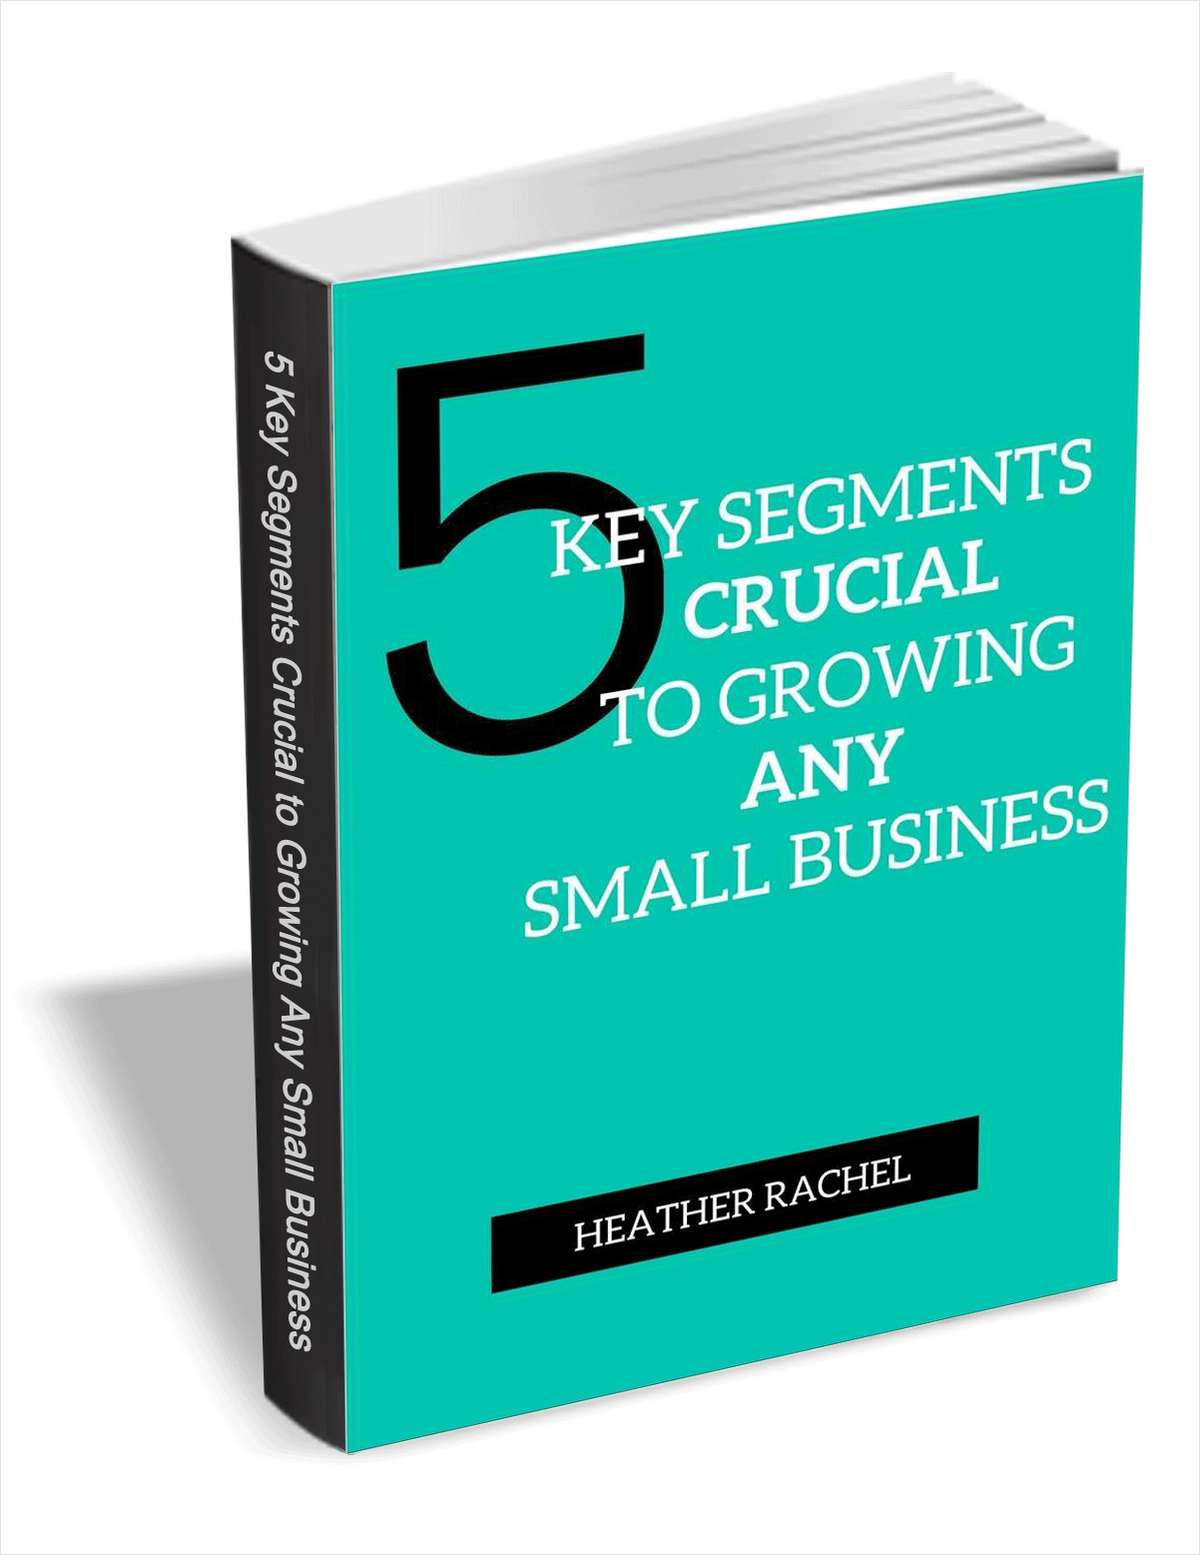 5 Key Segments Crucial to Growing Any Small Business